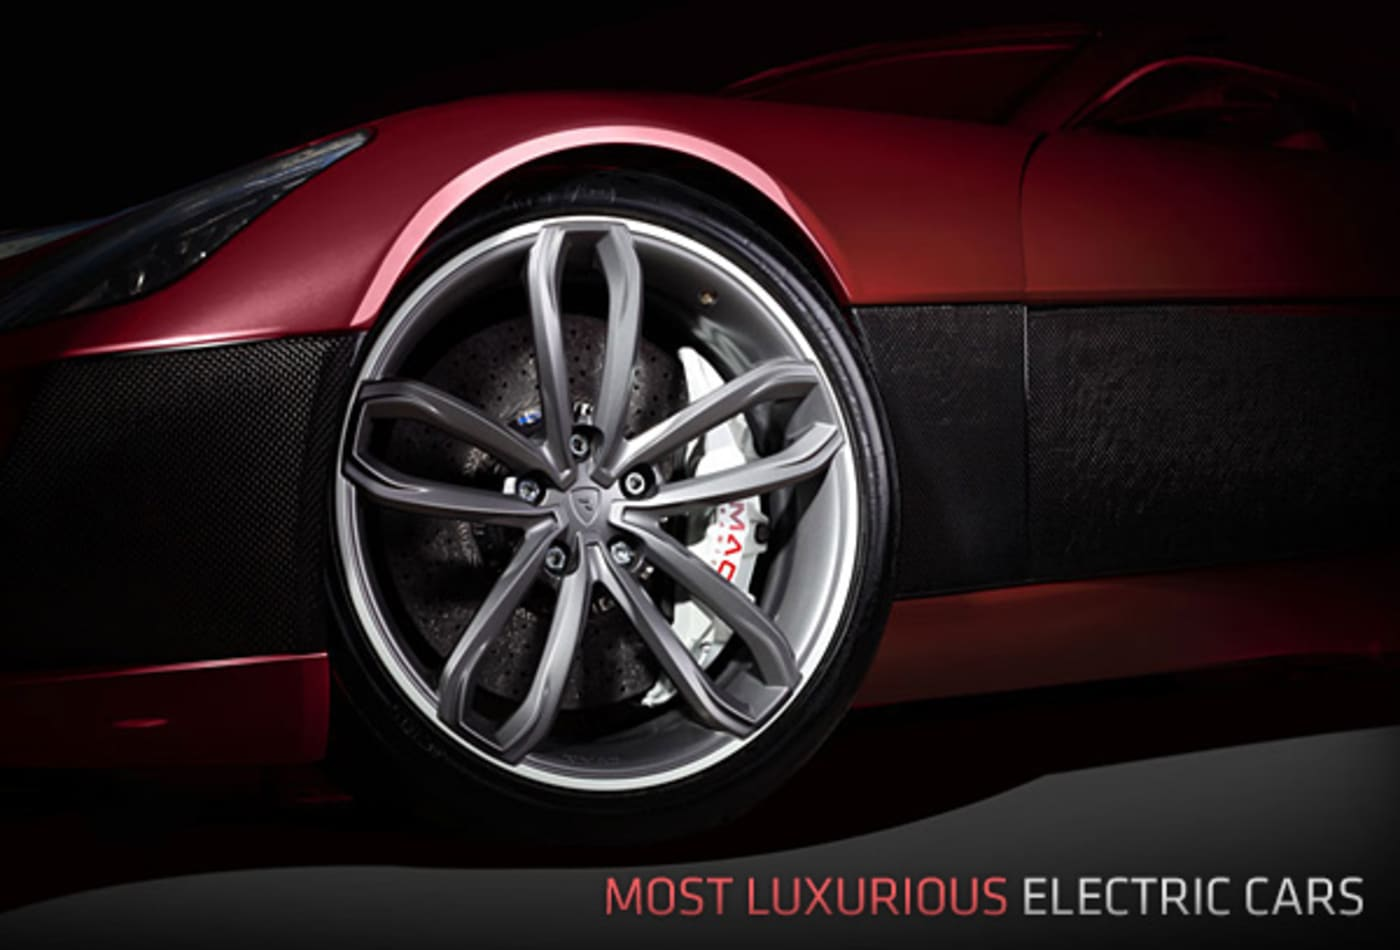 Cover-Rimac-Concept-One-Luxurious-Electric-Cars.jpg